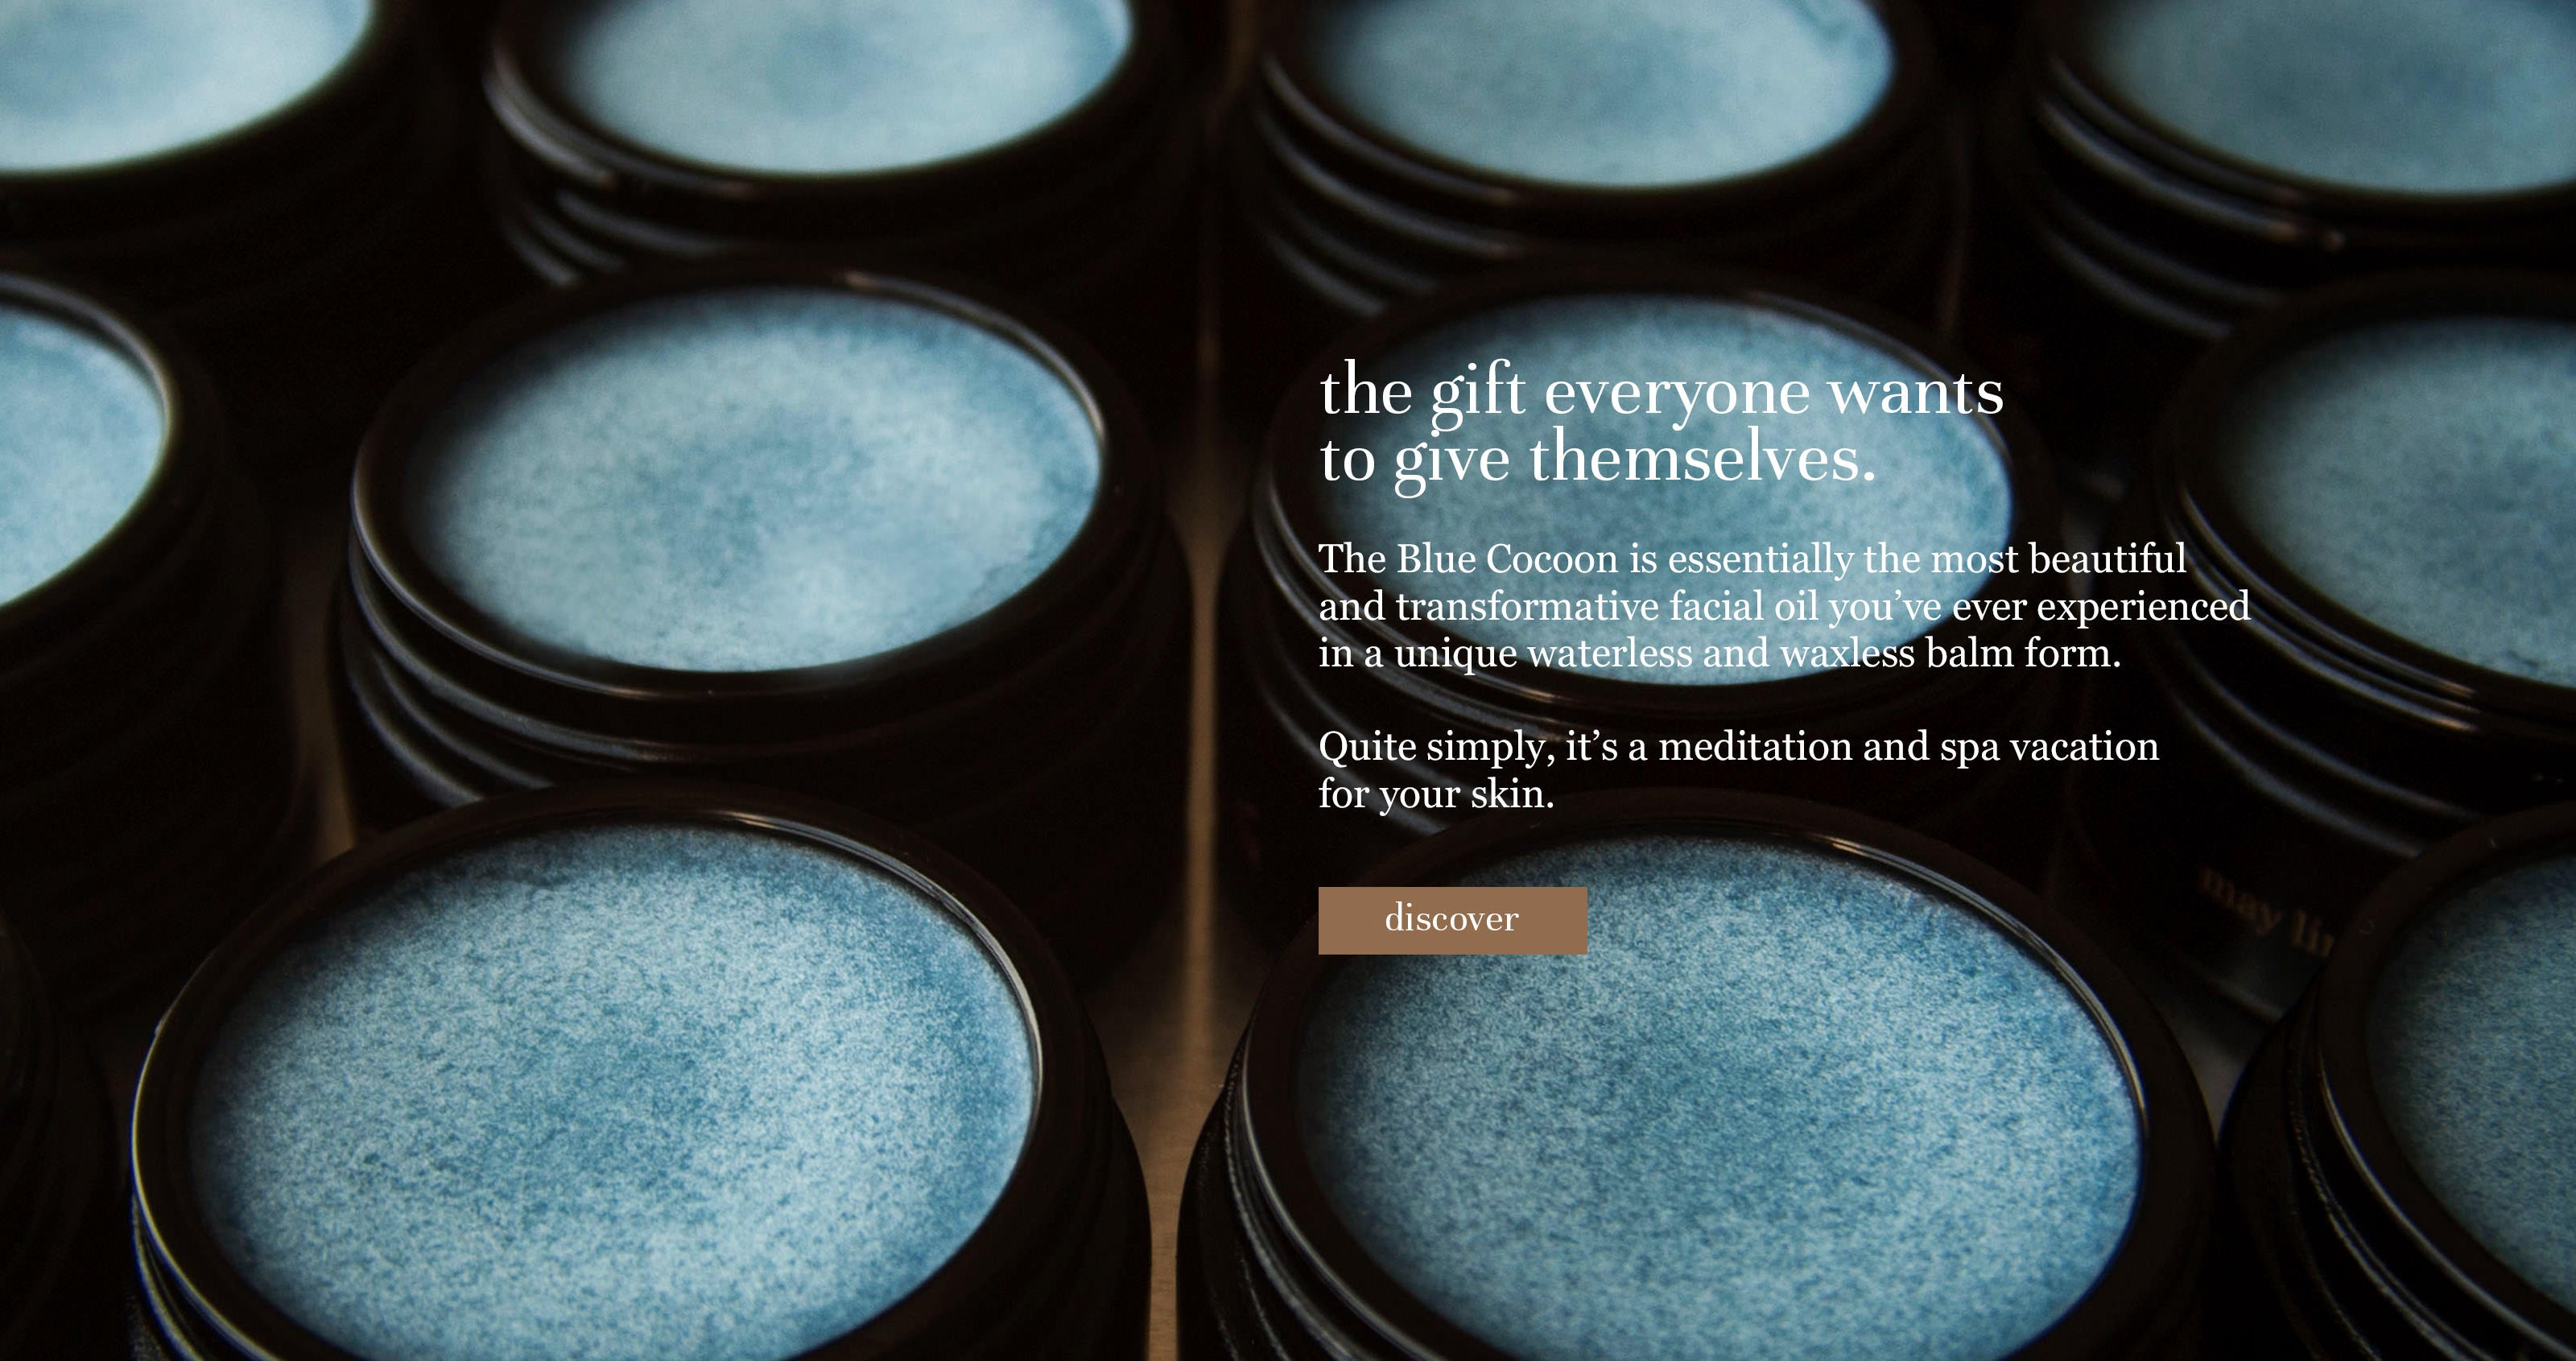 the gift everyone wants to give themselves. The Blue Cocoon is essentially the most beautiful and transformative facial oil you've ever experienced in a unique waterless and waxless balm form. Quite simply, it's a meditation and spa vacation for your skin.